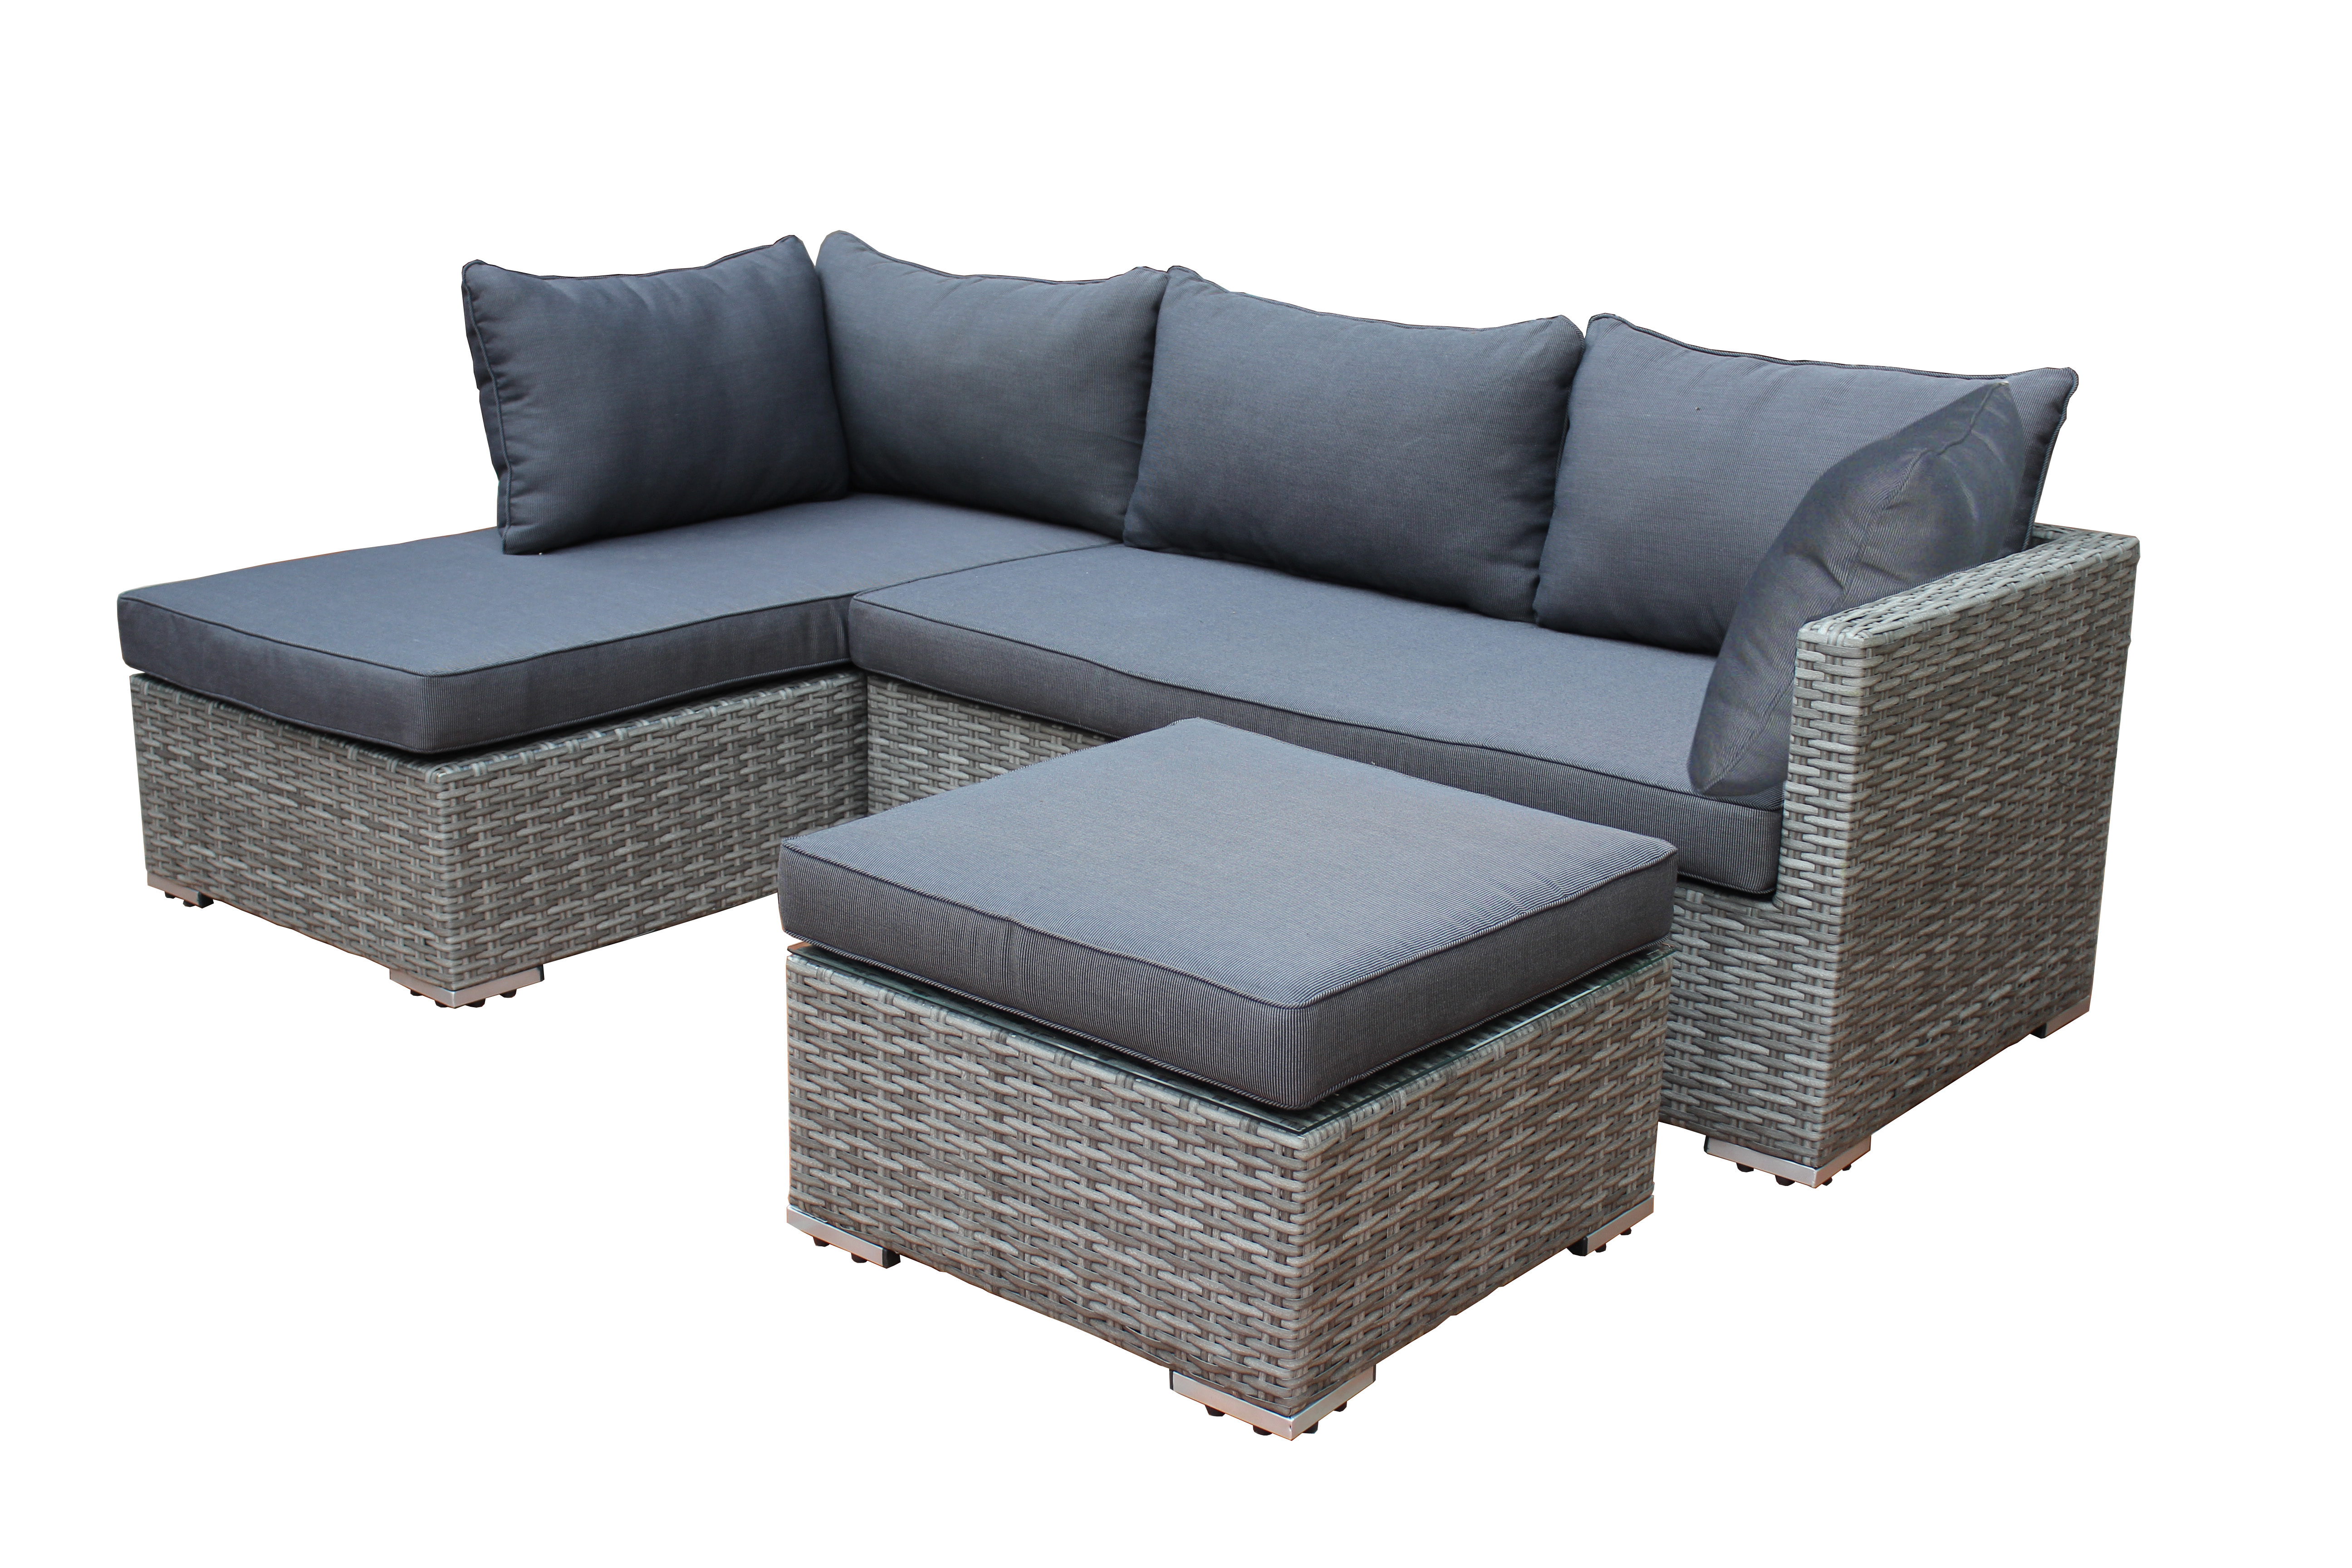 lounge set viletta 3 teilig gartenset balkonset garten terrasse balkon outdoor ebay. Black Bedroom Furniture Sets. Home Design Ideas